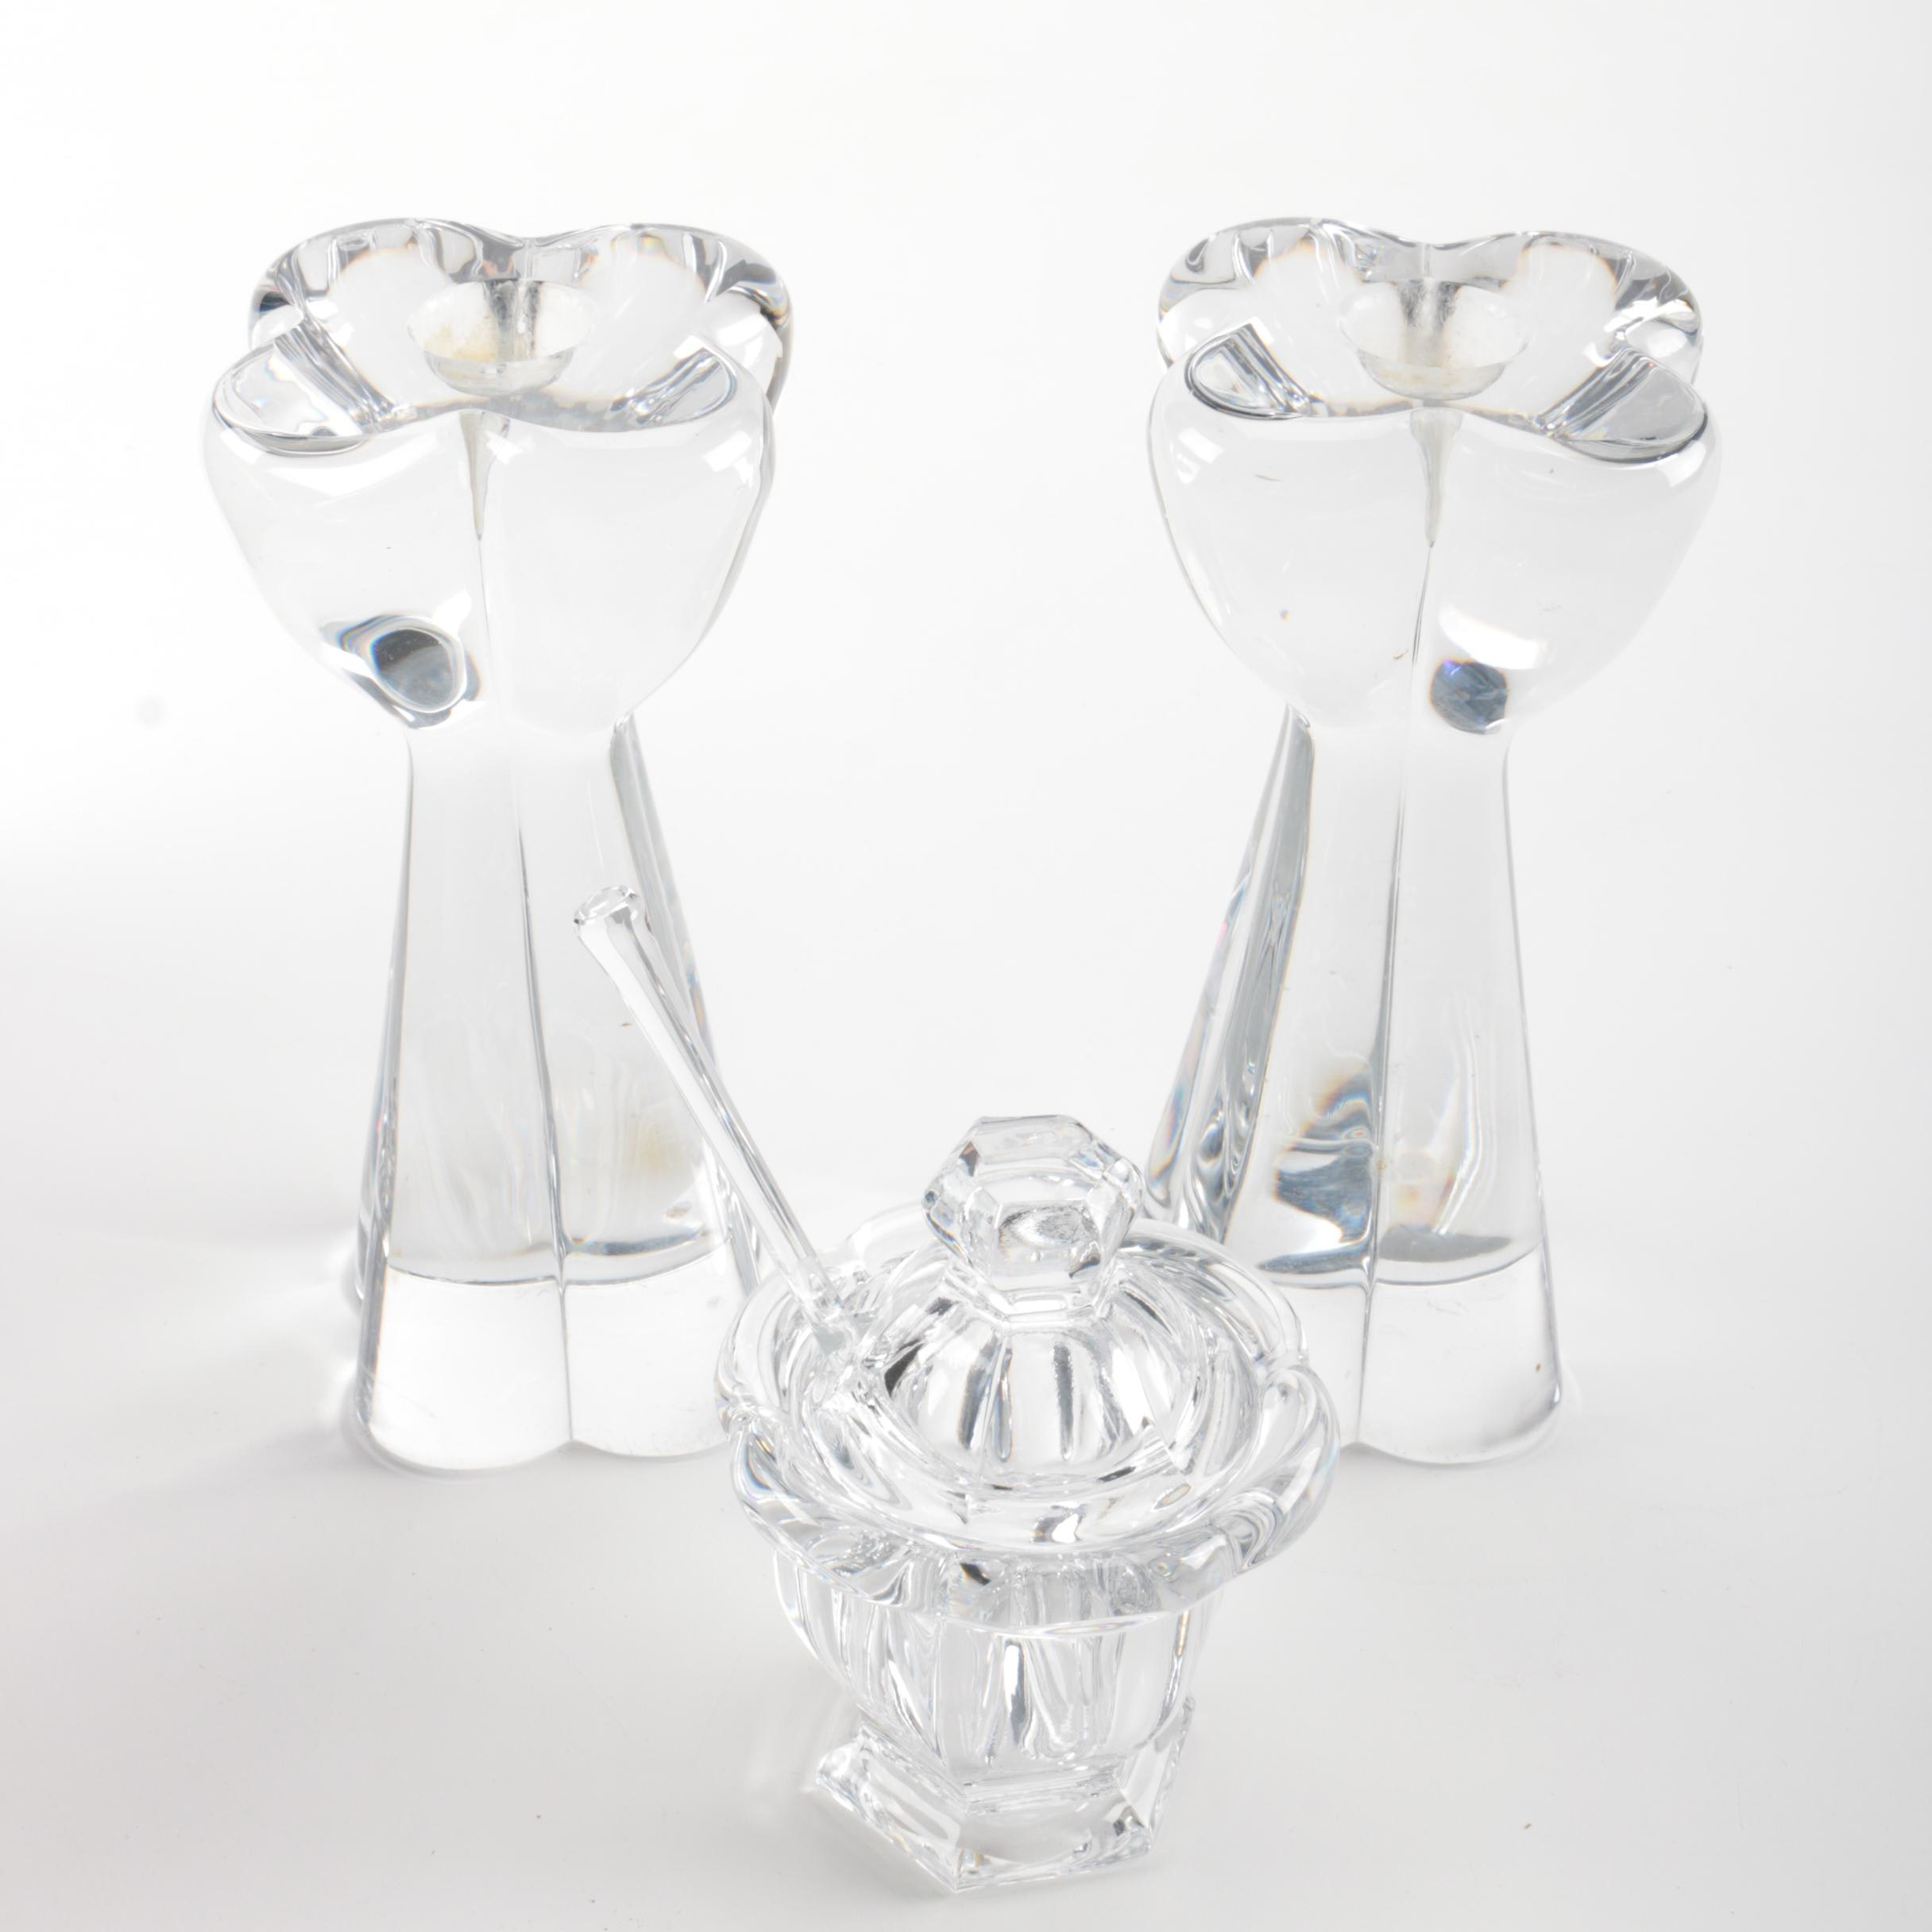 Pair of Baccarat Candlesticks and Sugar Bowl